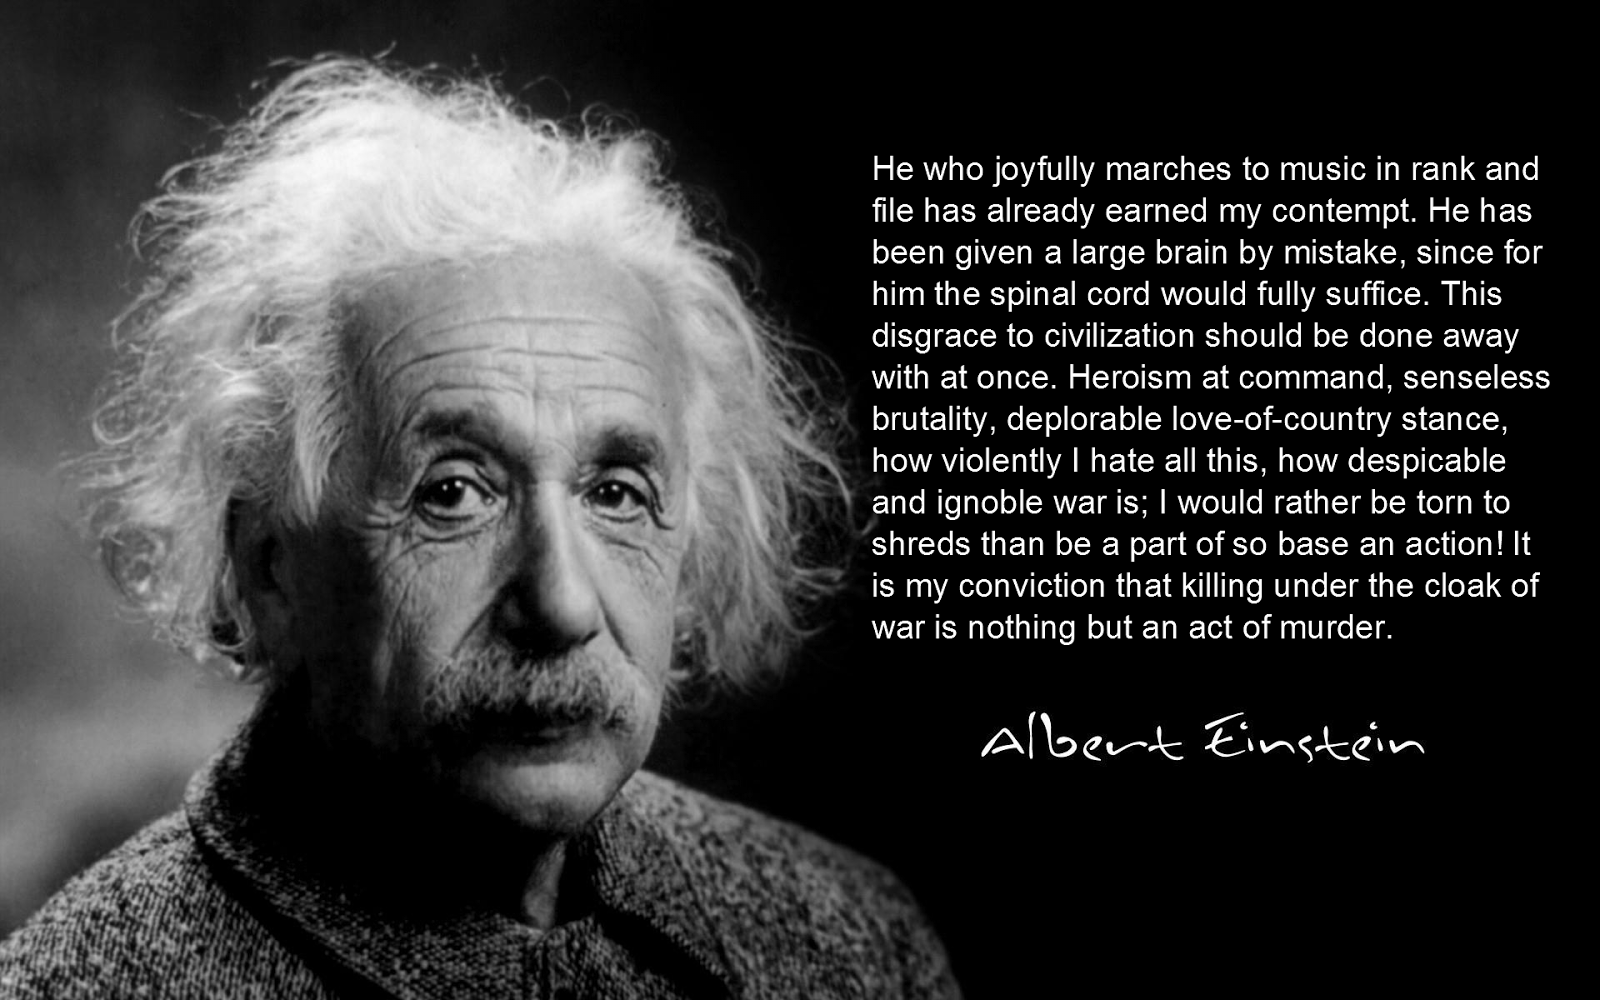 albert einstein always question authority independent thinker on rank and file albert einstein